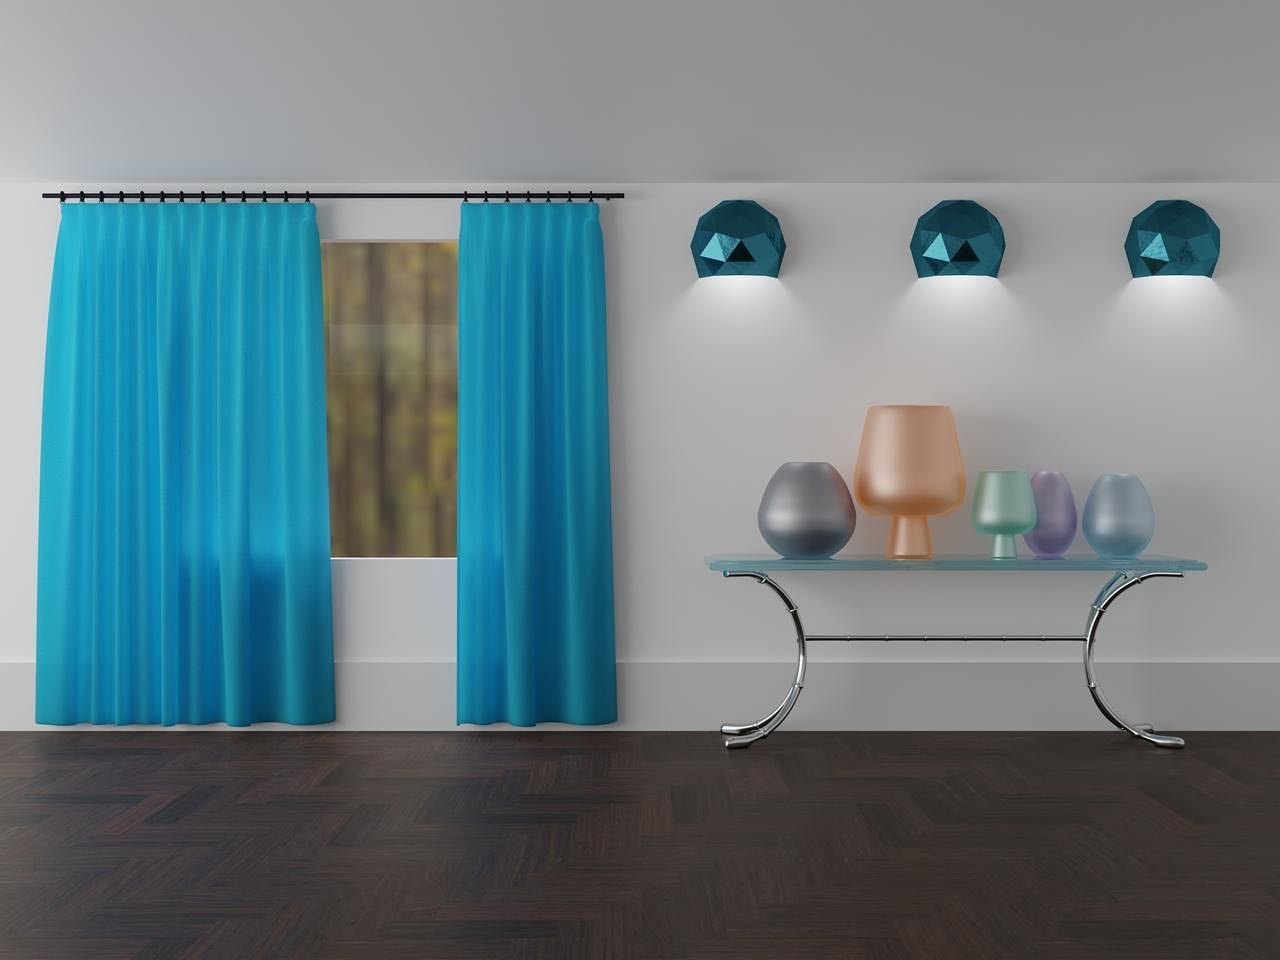 Interior with blue curtains